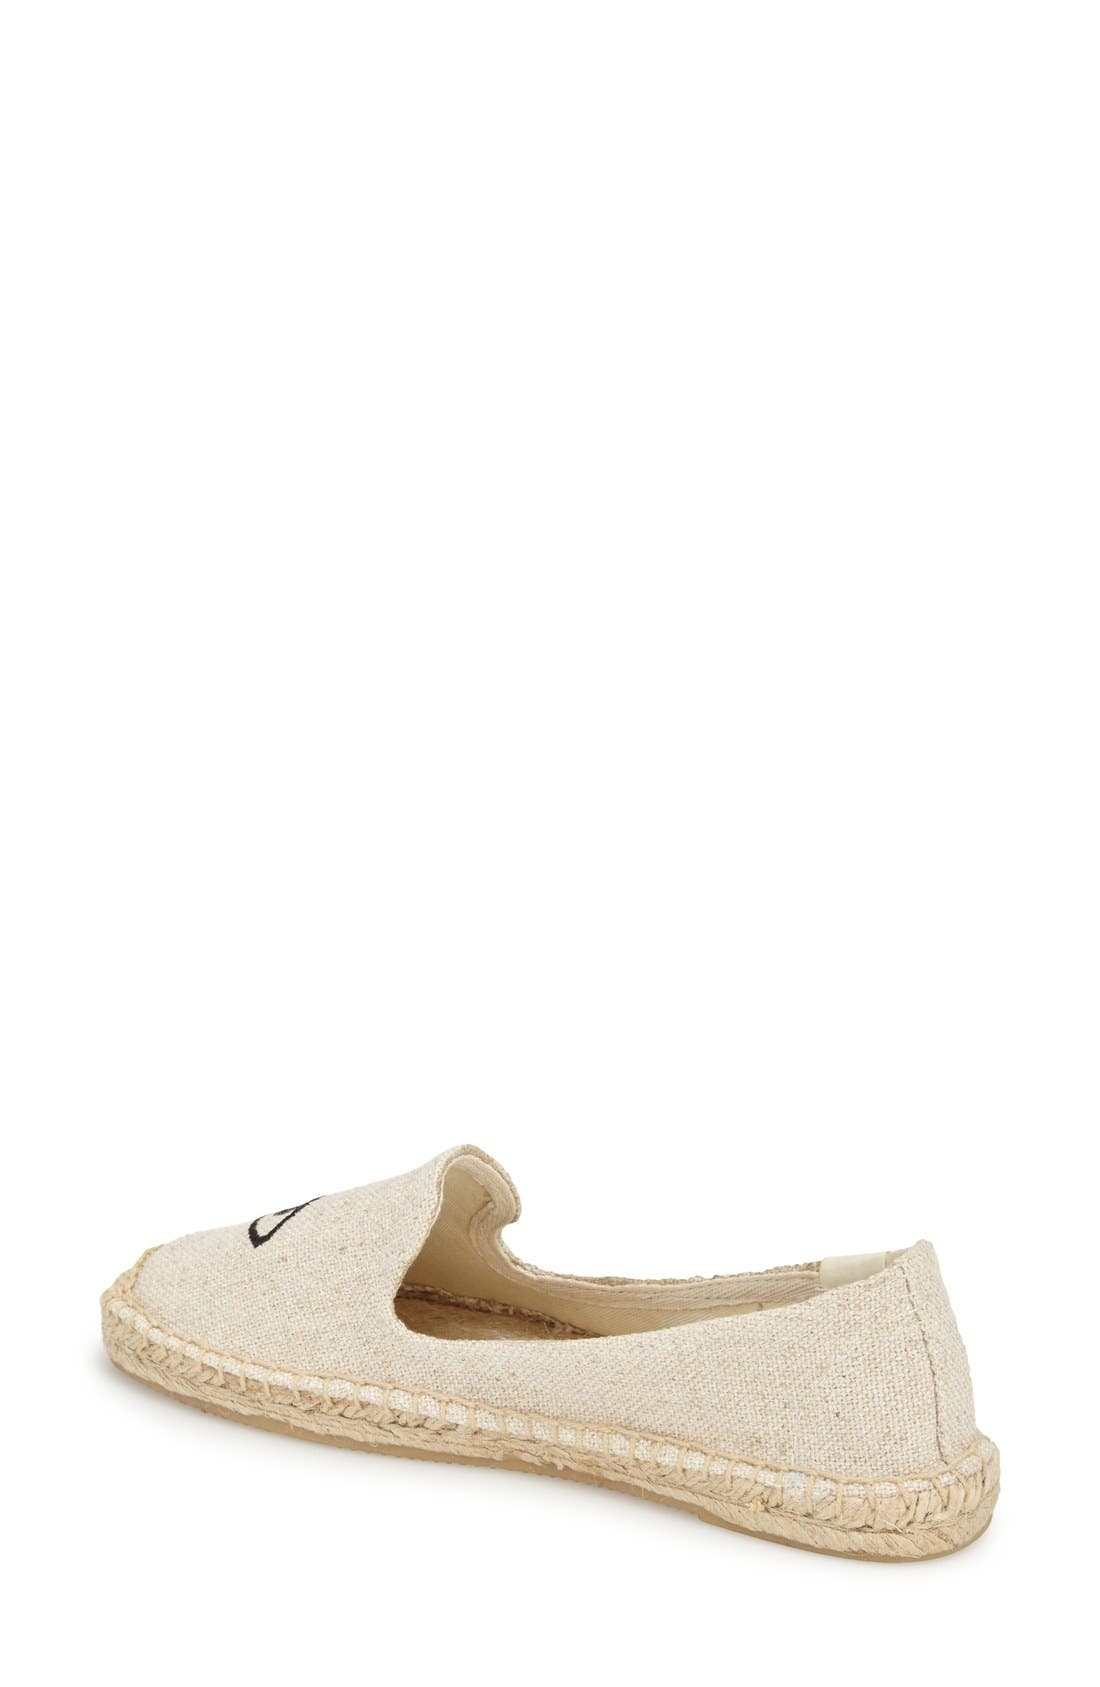 Jason Polan Espadrille Sandal,                             Alternate thumbnail 3, color,                             WINK SAND